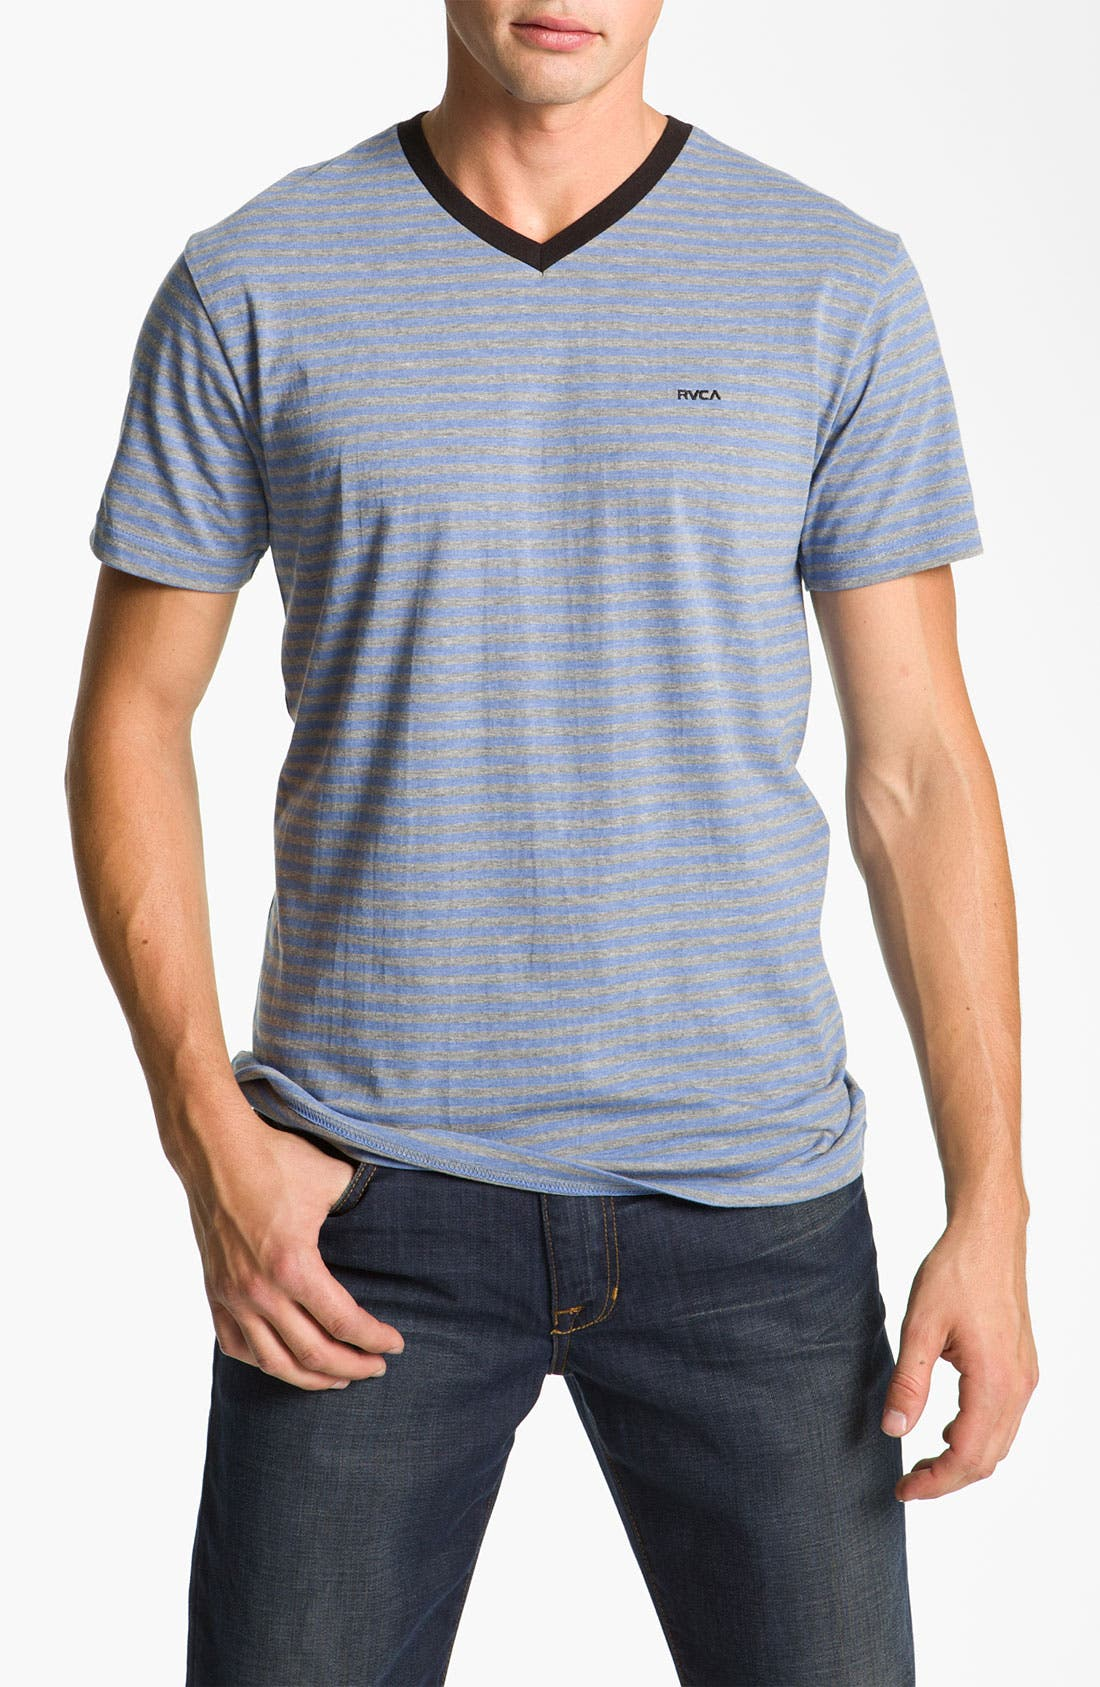 Main Image - RVCA 'Grain' Trim Fit V-Neck T-Shirt